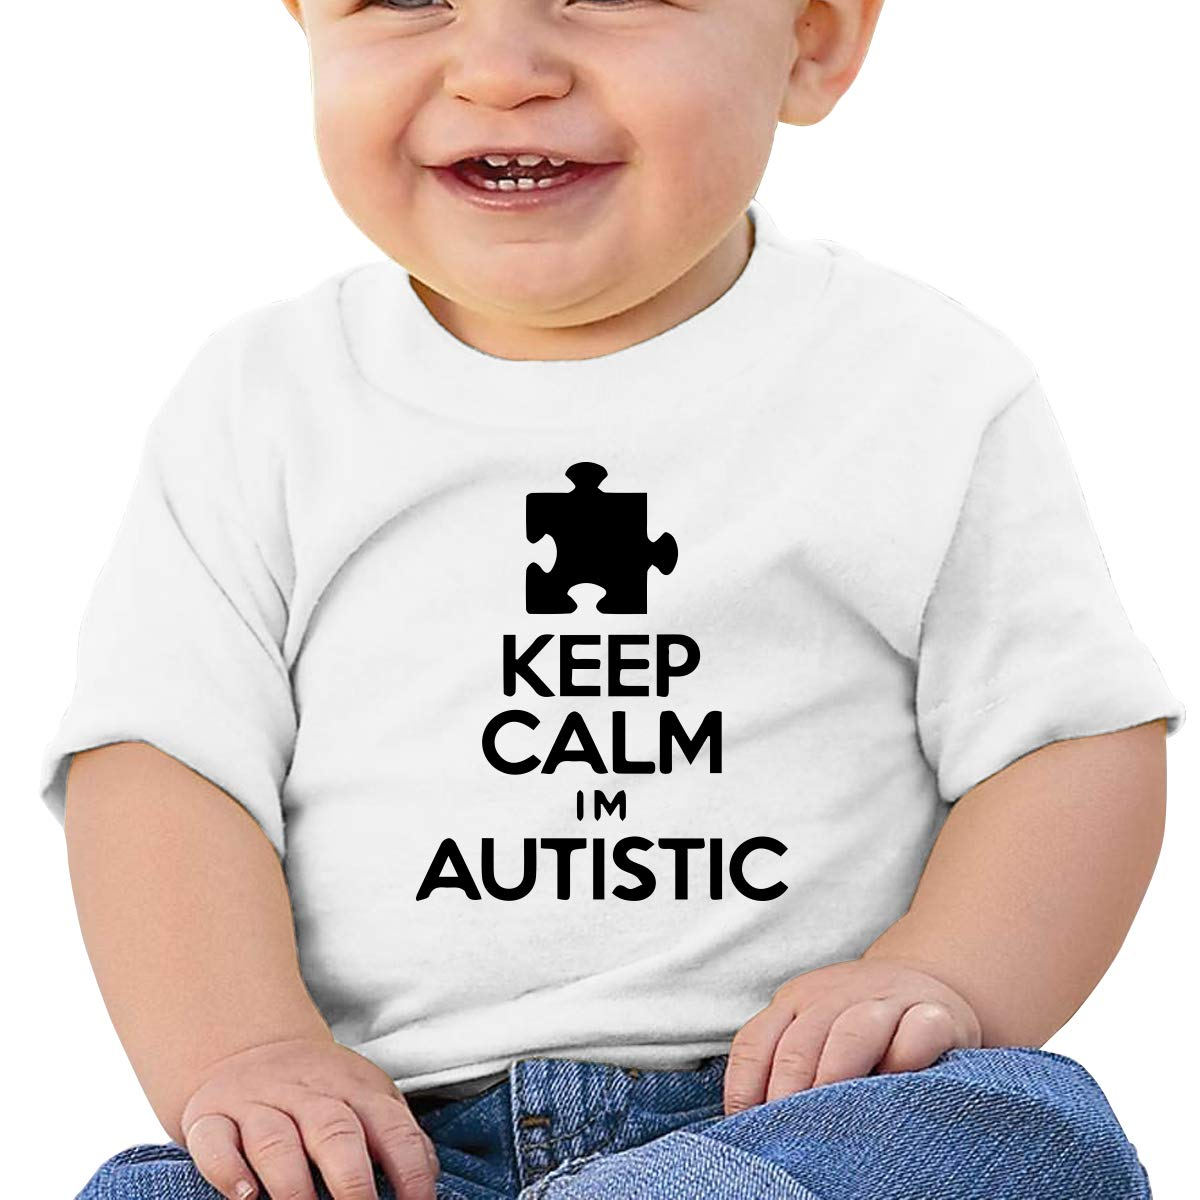 Keep Calm Im Autistic-1 Baby Boys Girls Short Sleeve Crew Neck T Shirts 6-18 Month Tops